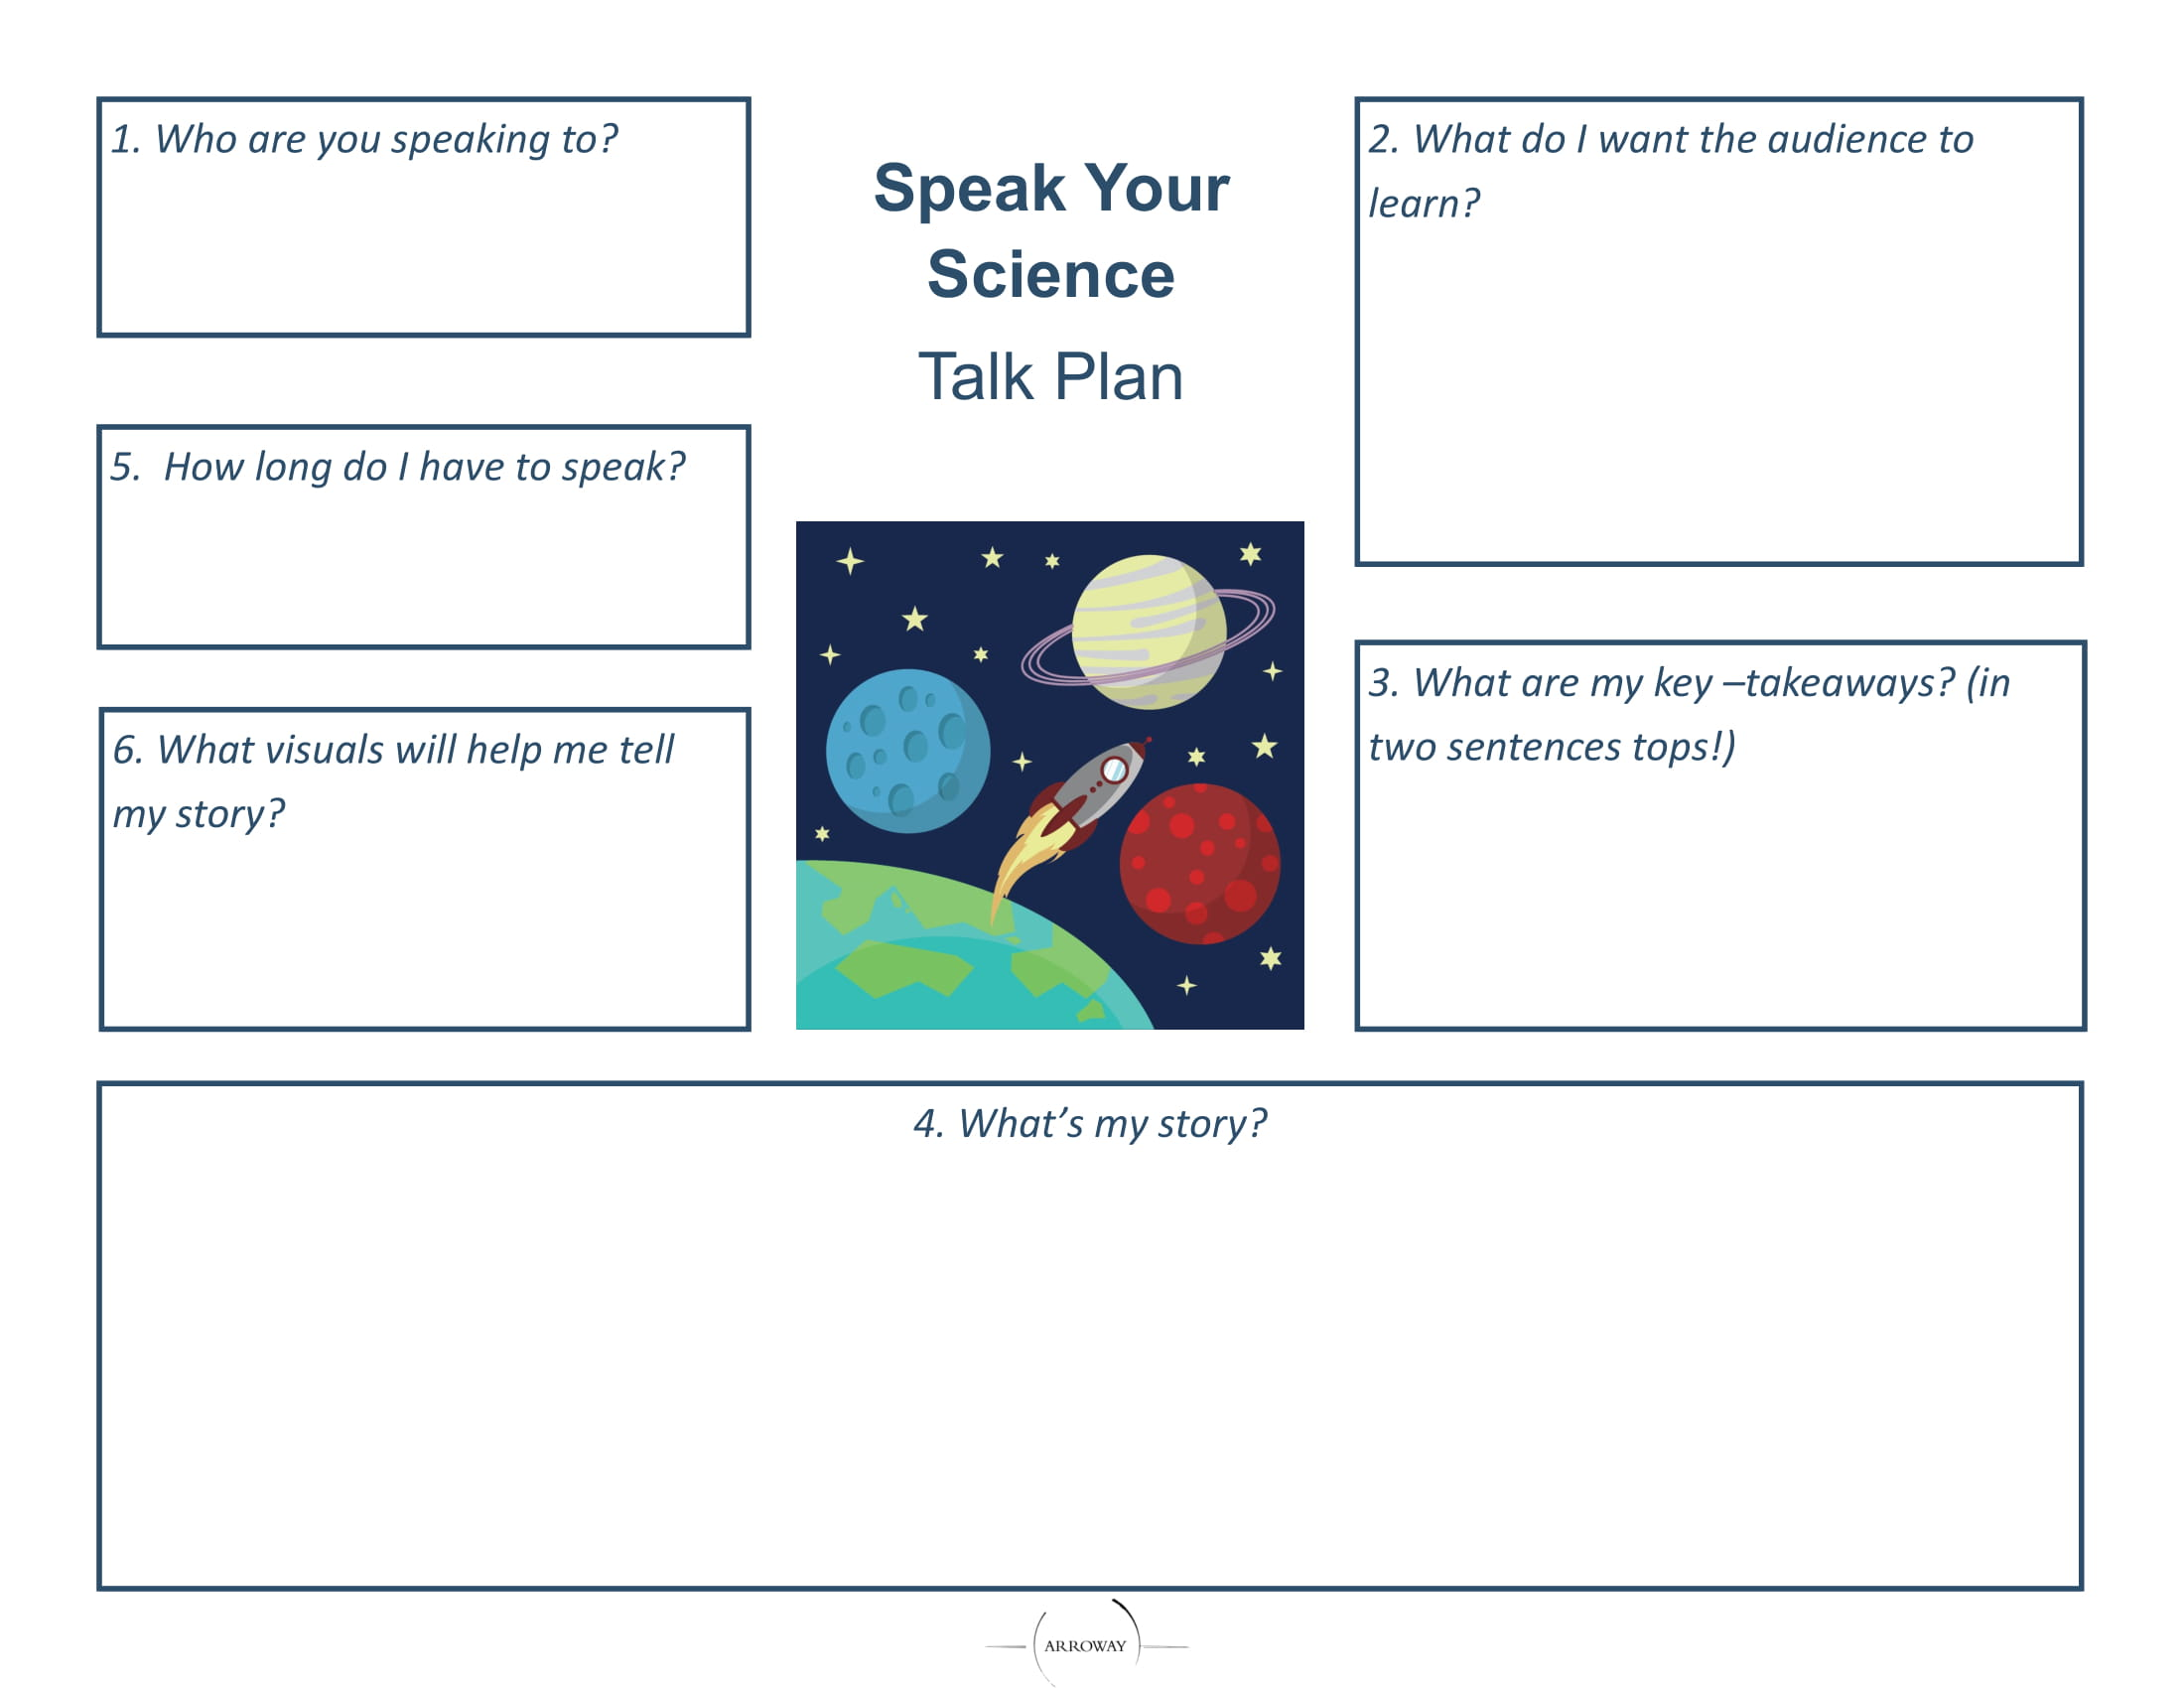 Speak Your Science - Talk Plan-1.jpg